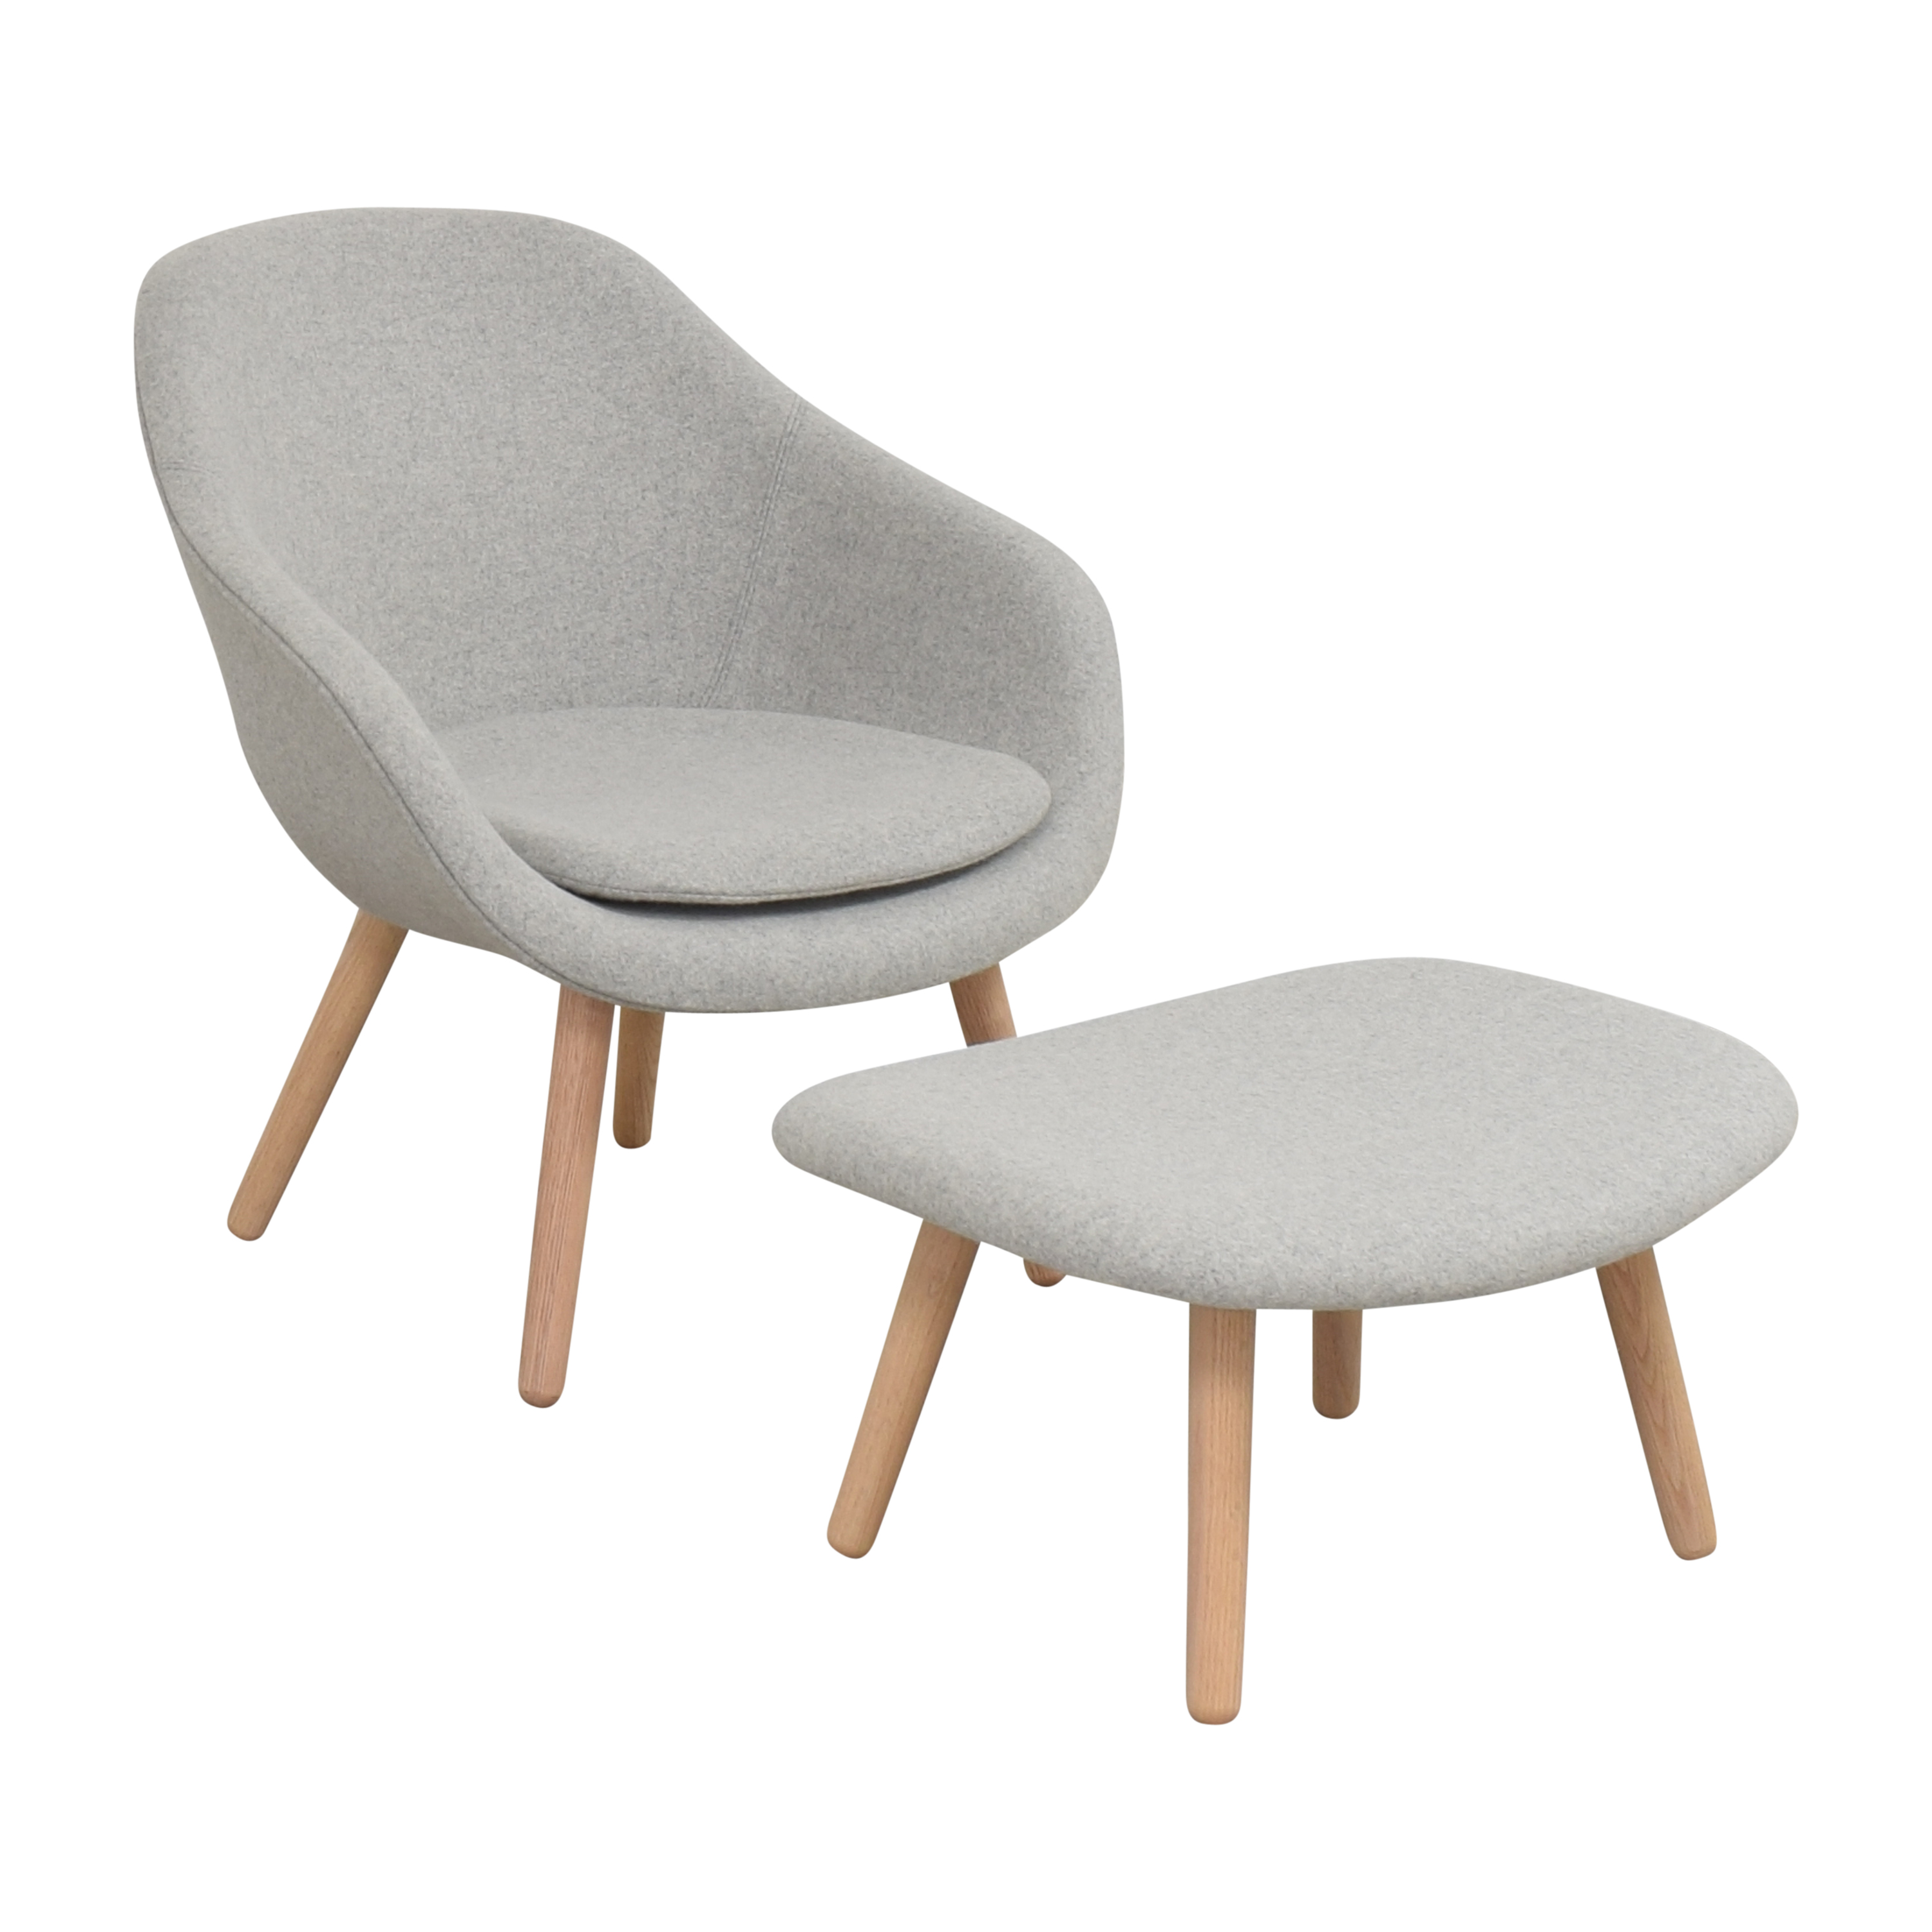 Hay Hay A Lounge 82 Arm Chair with Ottoman